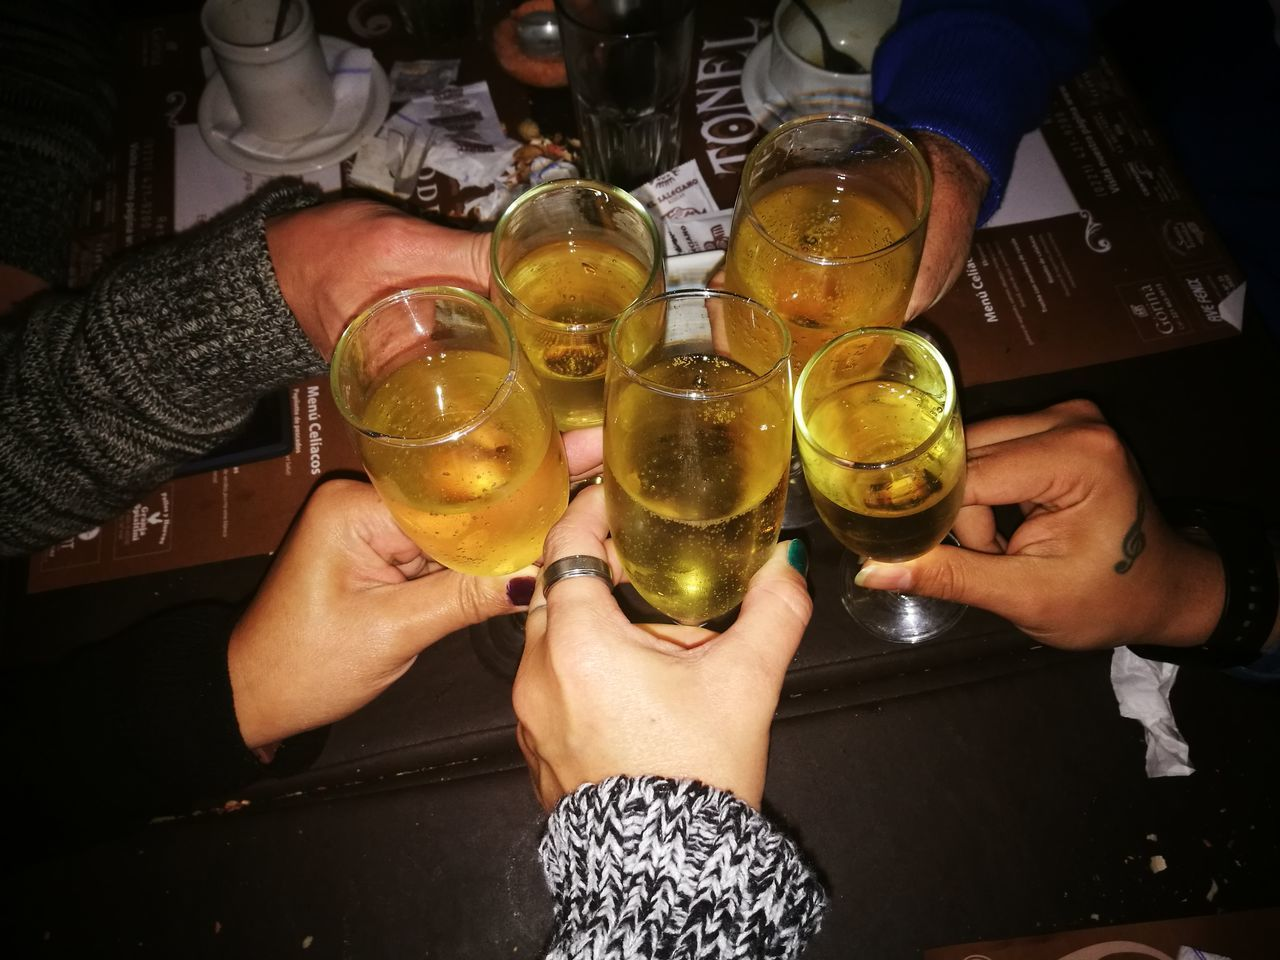 real people, human hand, human body part, food and drink, holding, lifestyles, leisure activity, men, drink, alcohol, women, refreshment, friendship, high angle view, indoors, celebration, togetherness, two people, freshness, low section, happy hour, day, adult, people